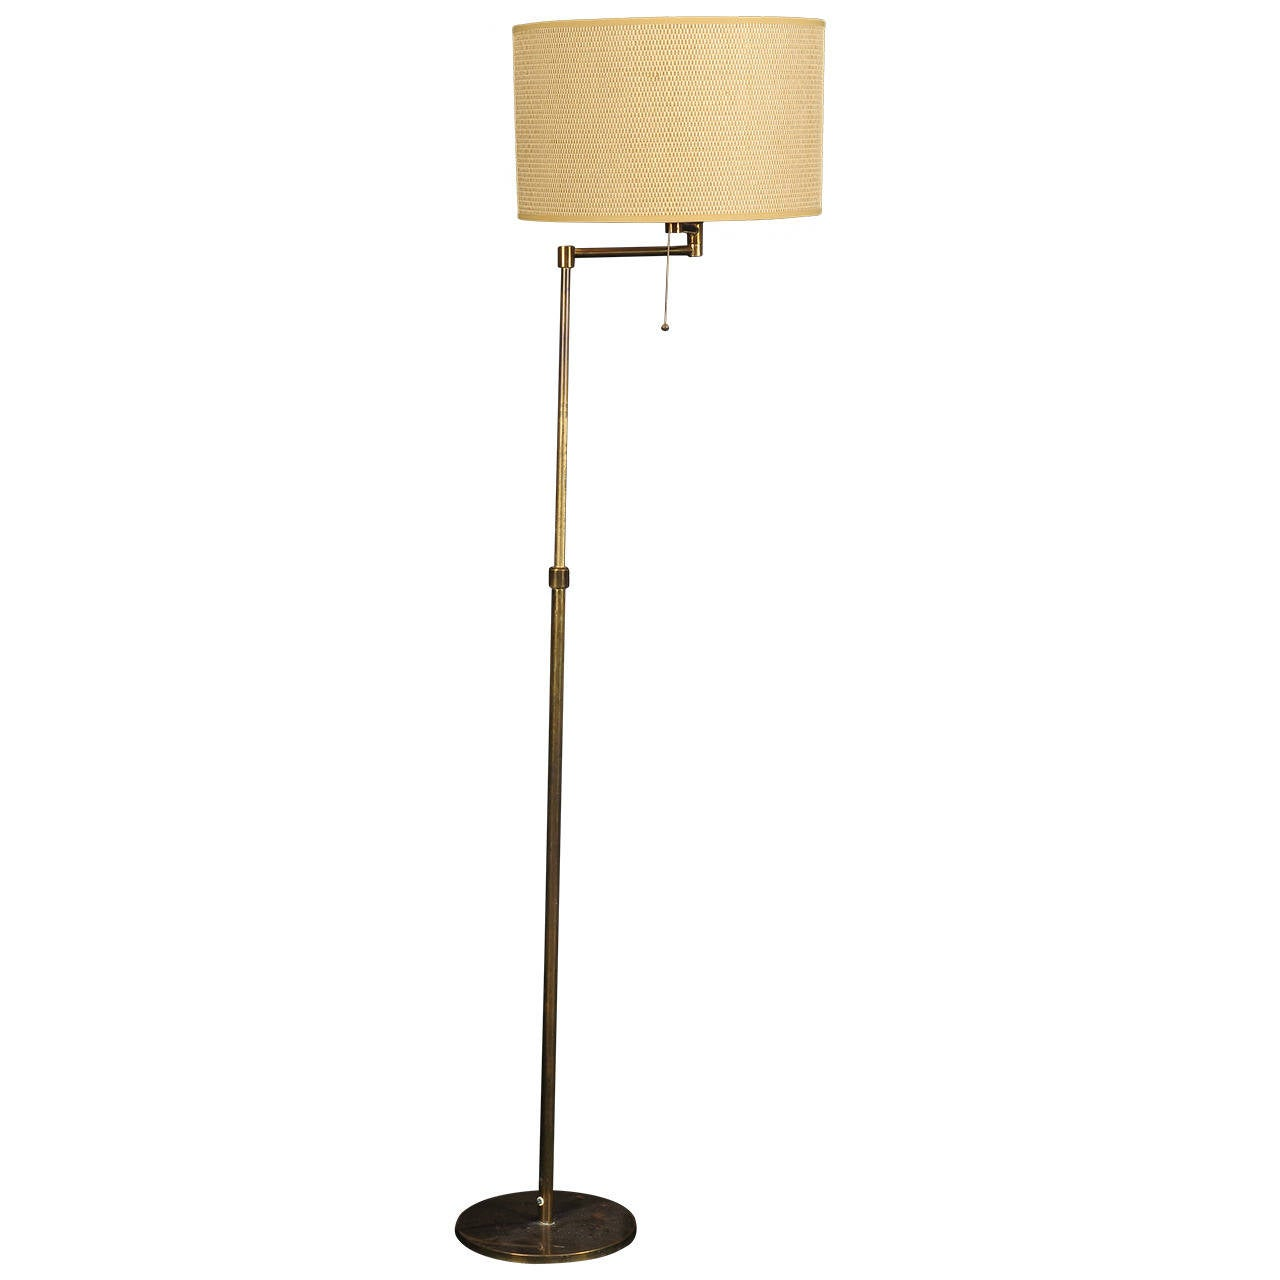 swing arm floor lamp by aredoluce for sale at 1stdibs. Black Bedroom Furniture Sets. Home Design Ideas